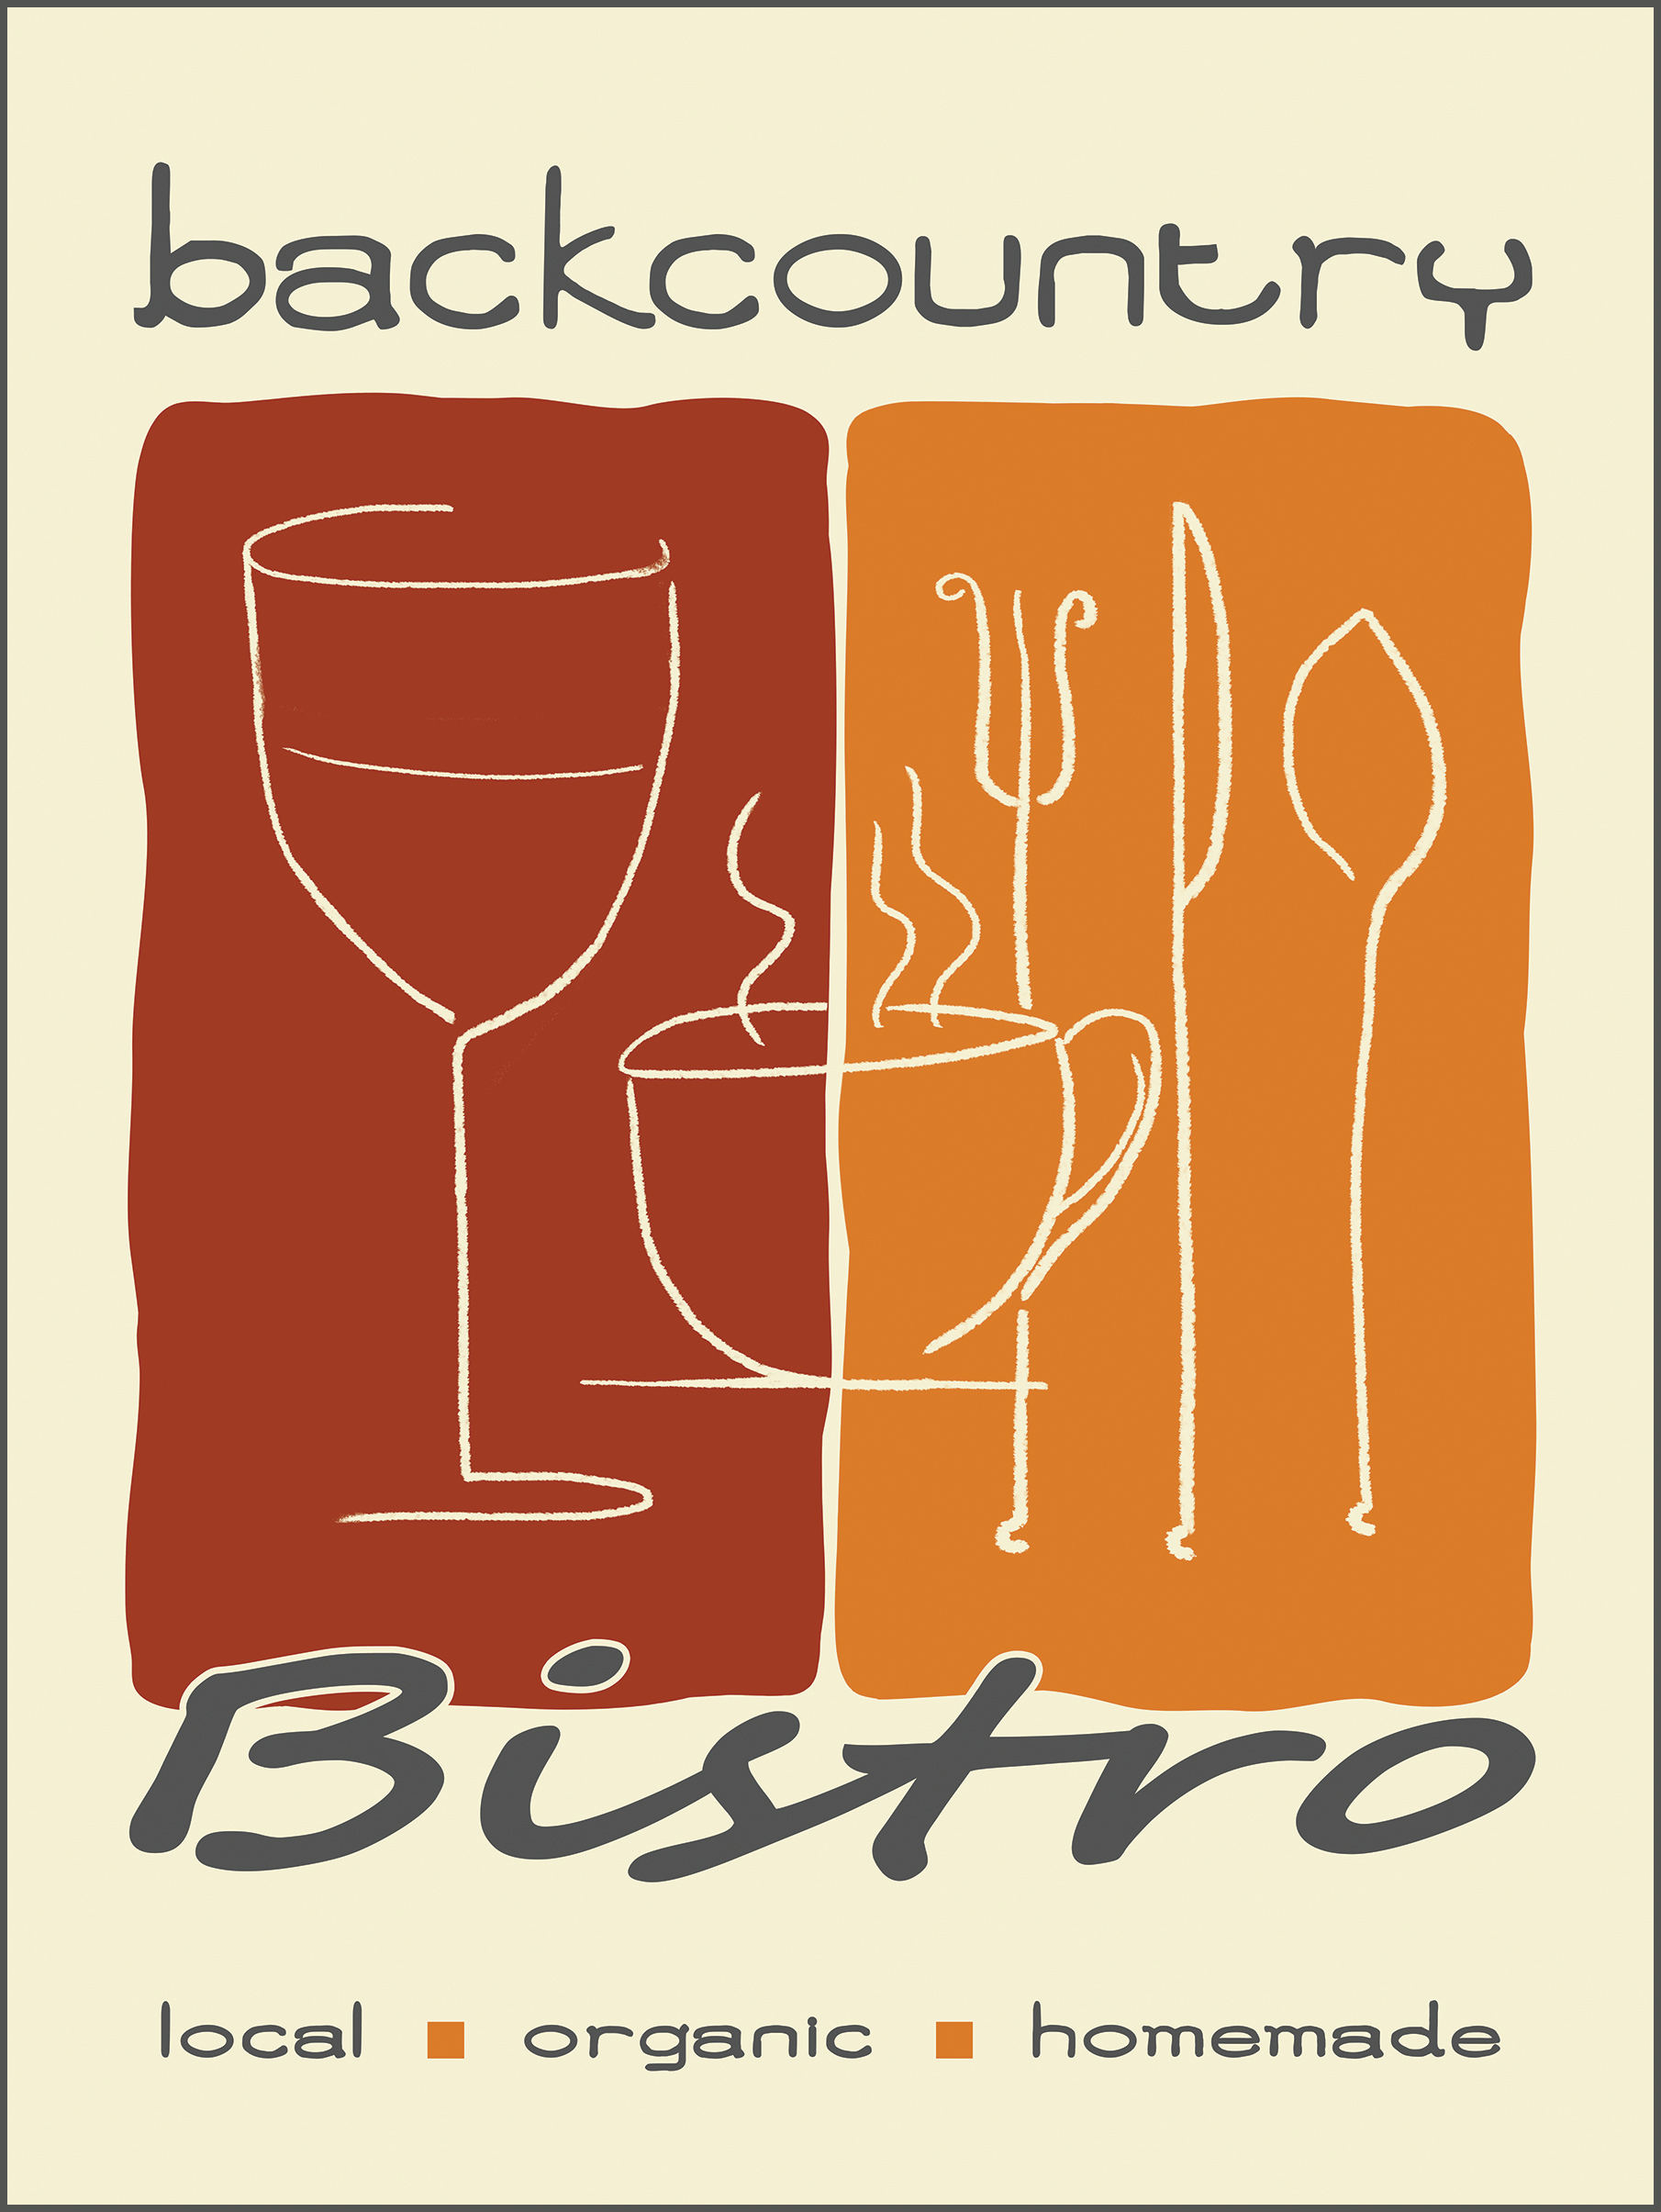 Backcountry Bistro